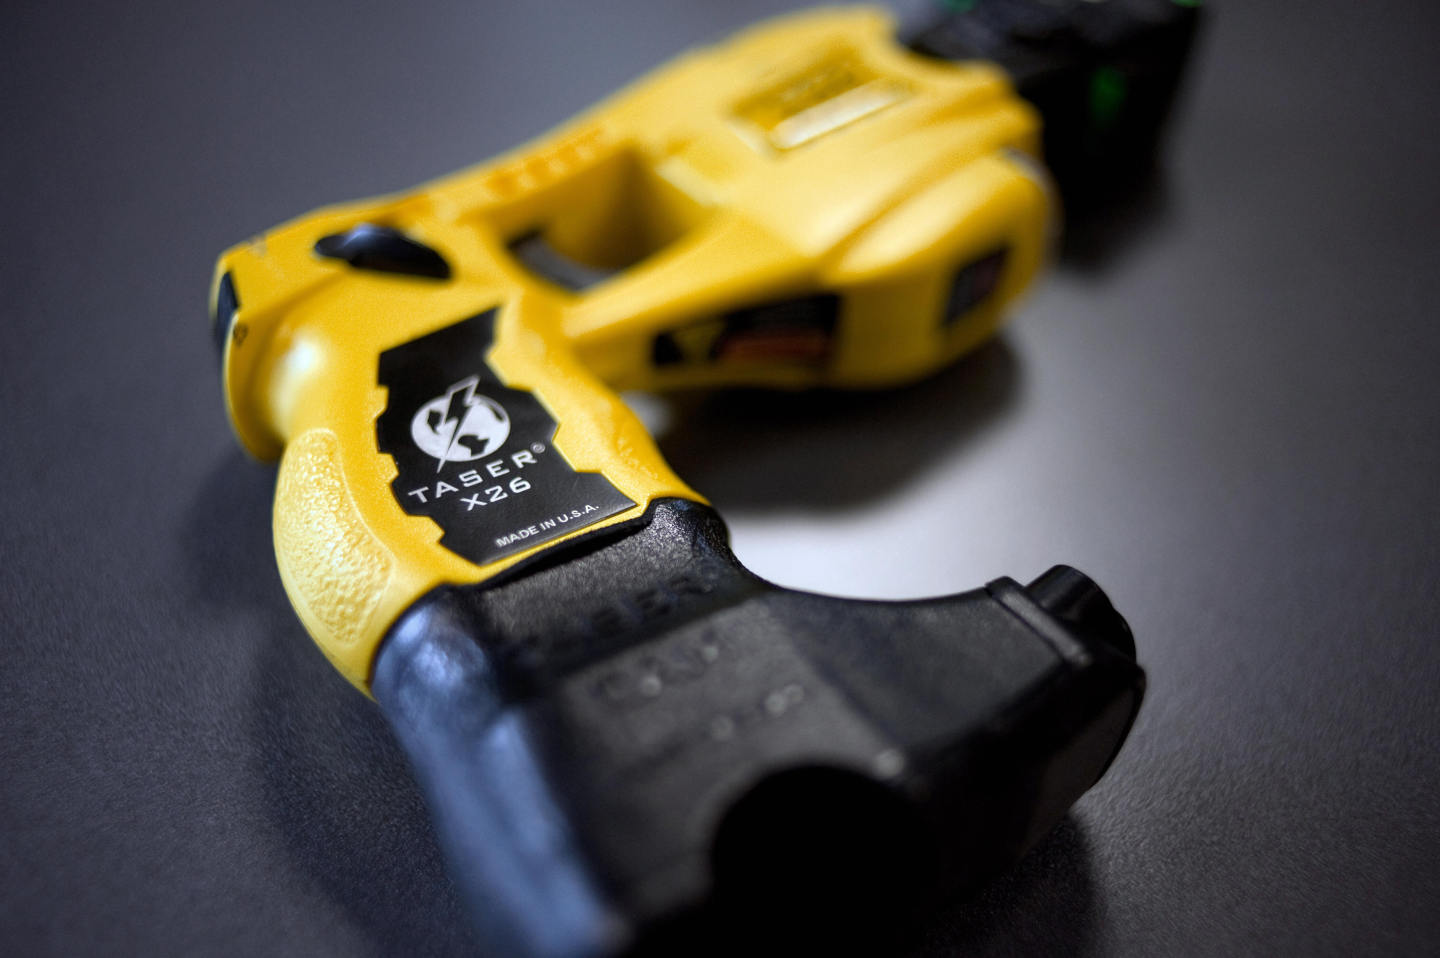 A Taser X26. (Fred Dufour/AFP/Getty Images)